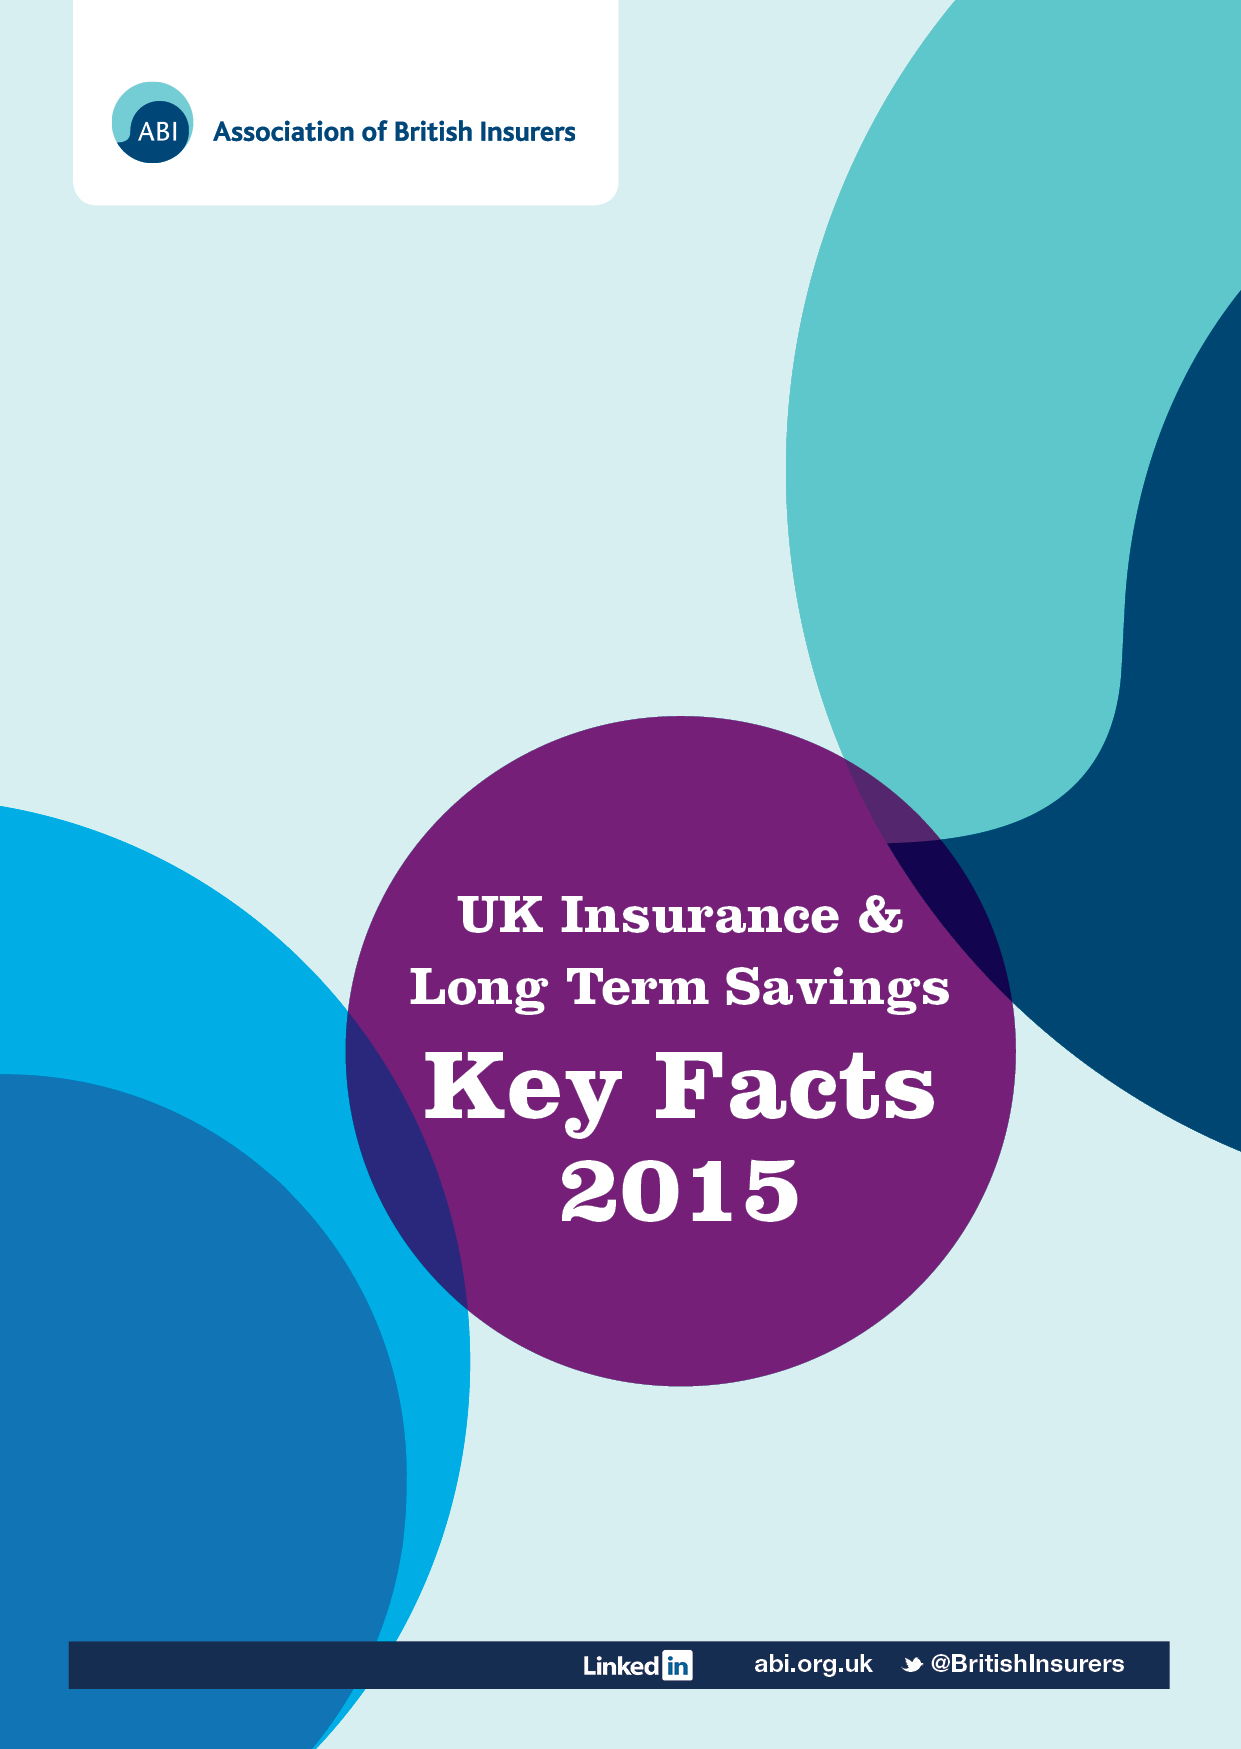 Download Key Facts 2015